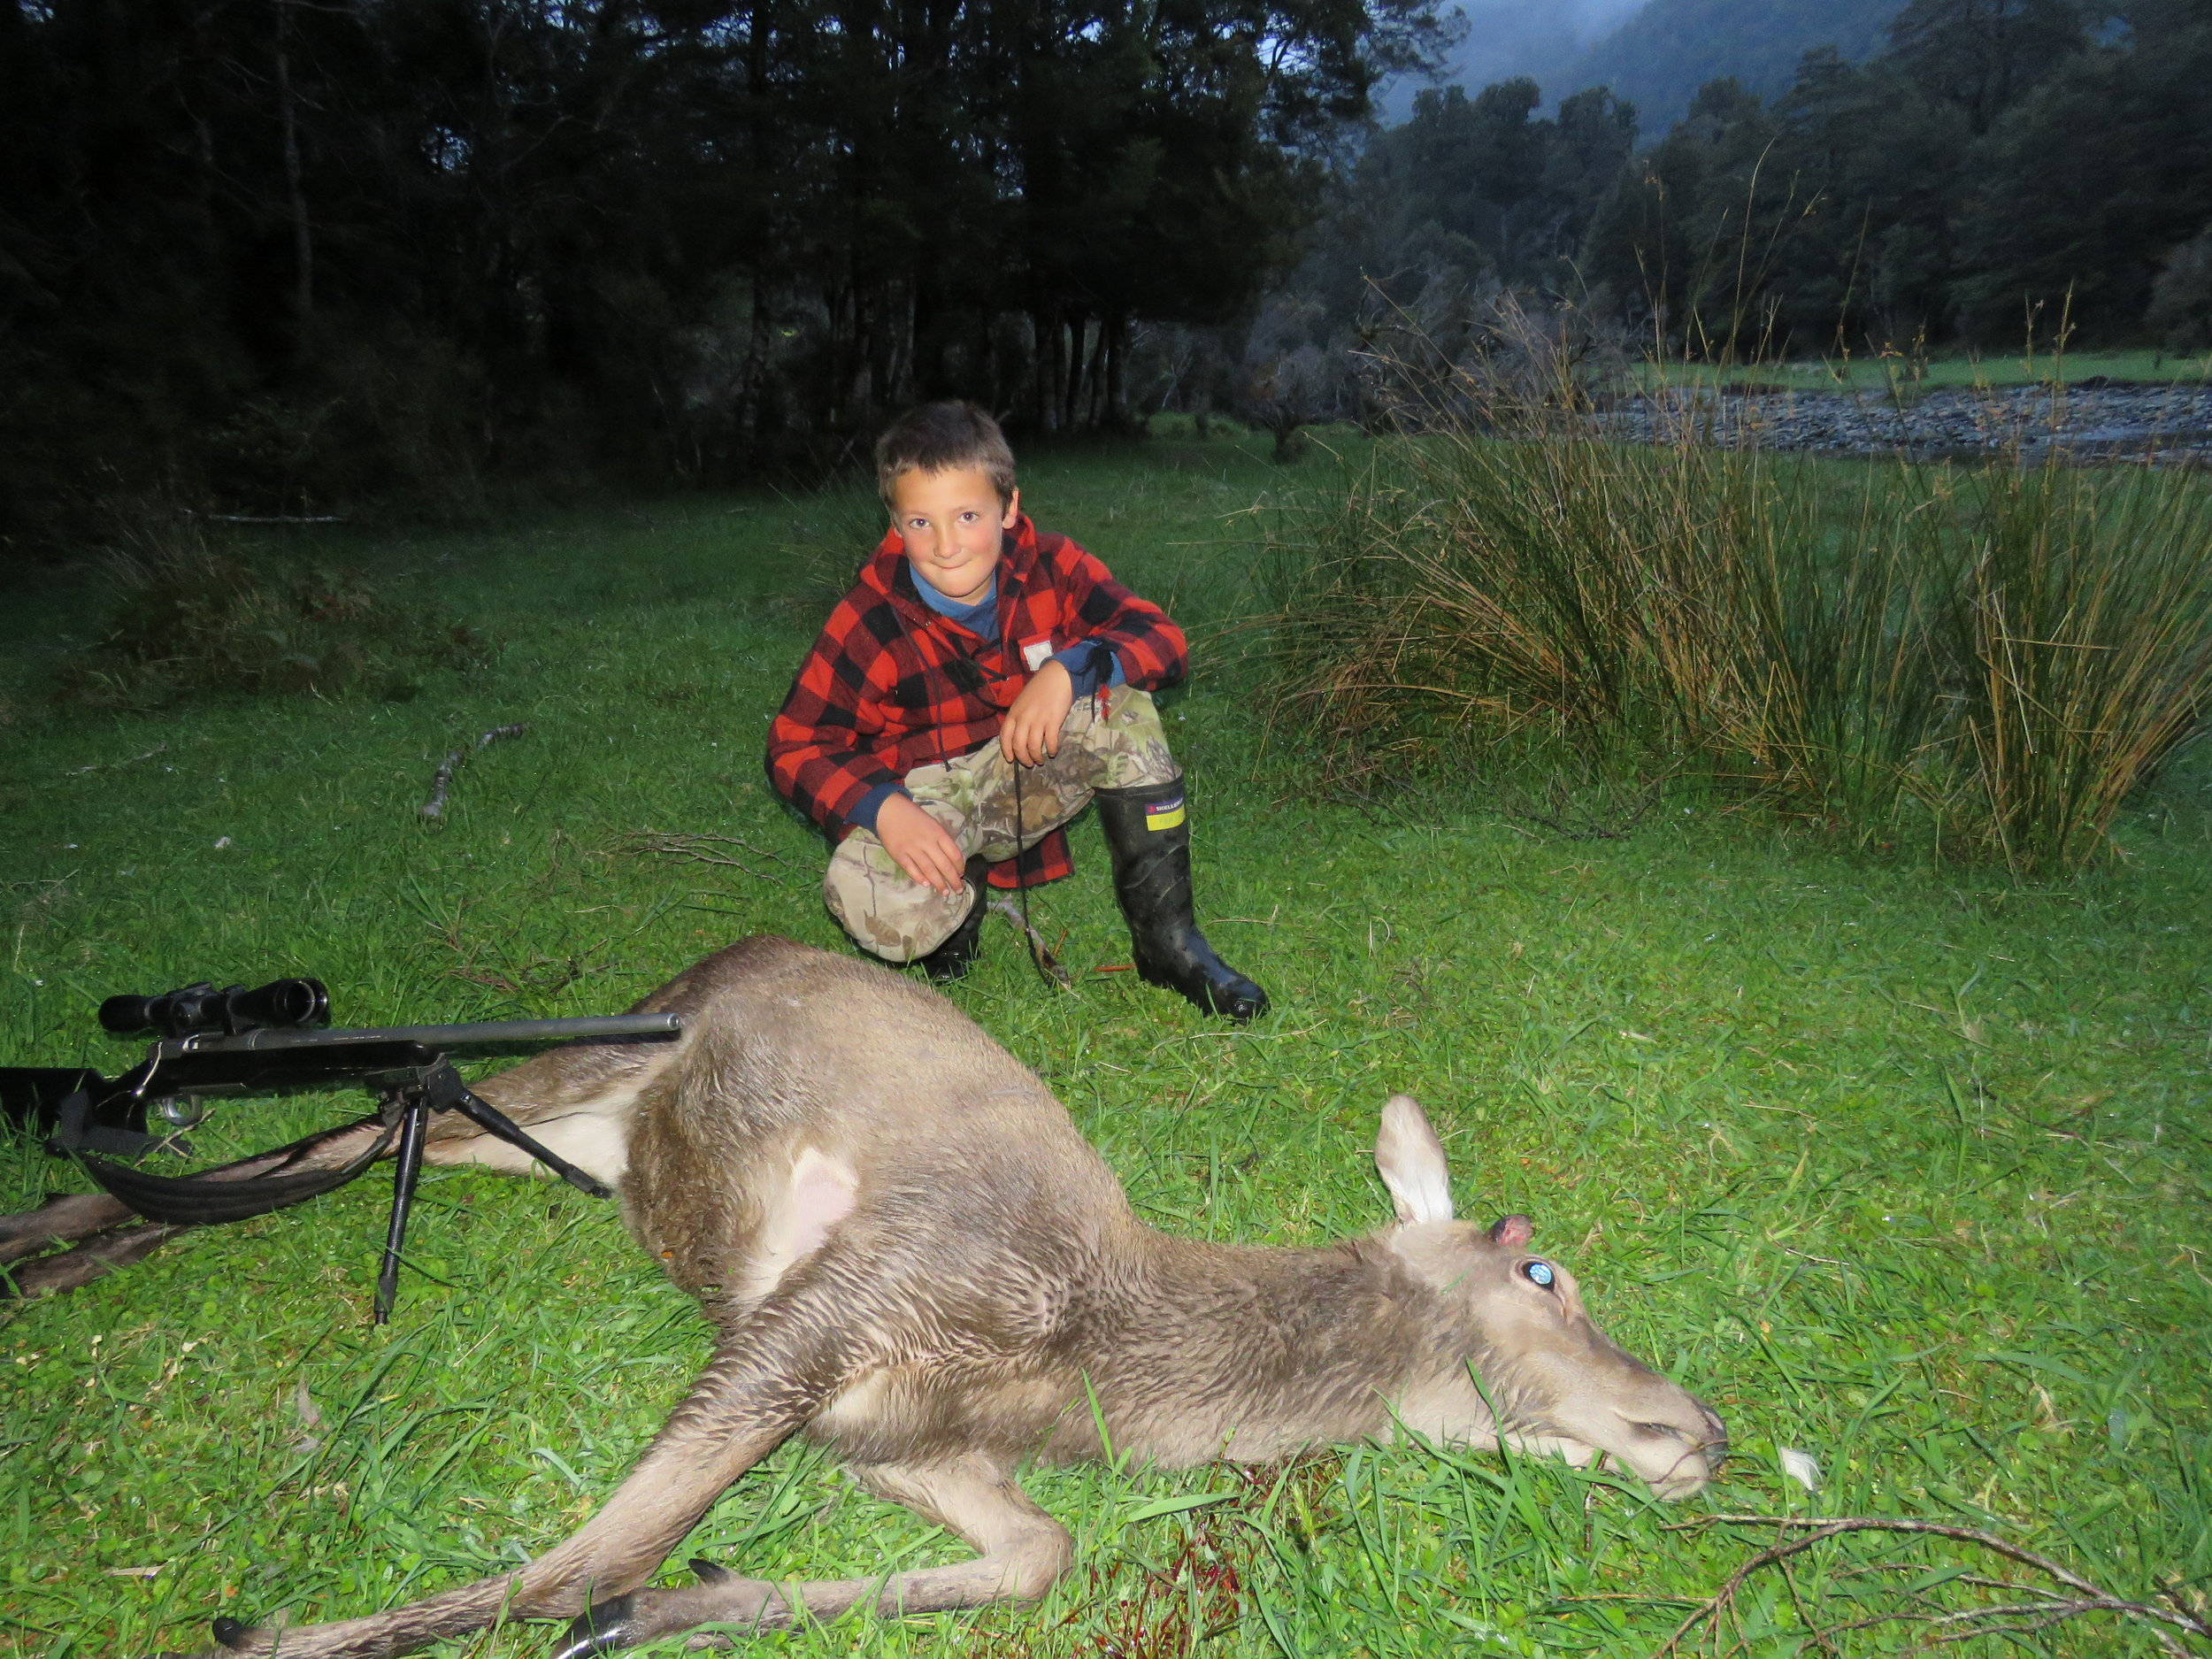 George Monk with the yearling red deer, caught out on the Spring growth late in the evening.